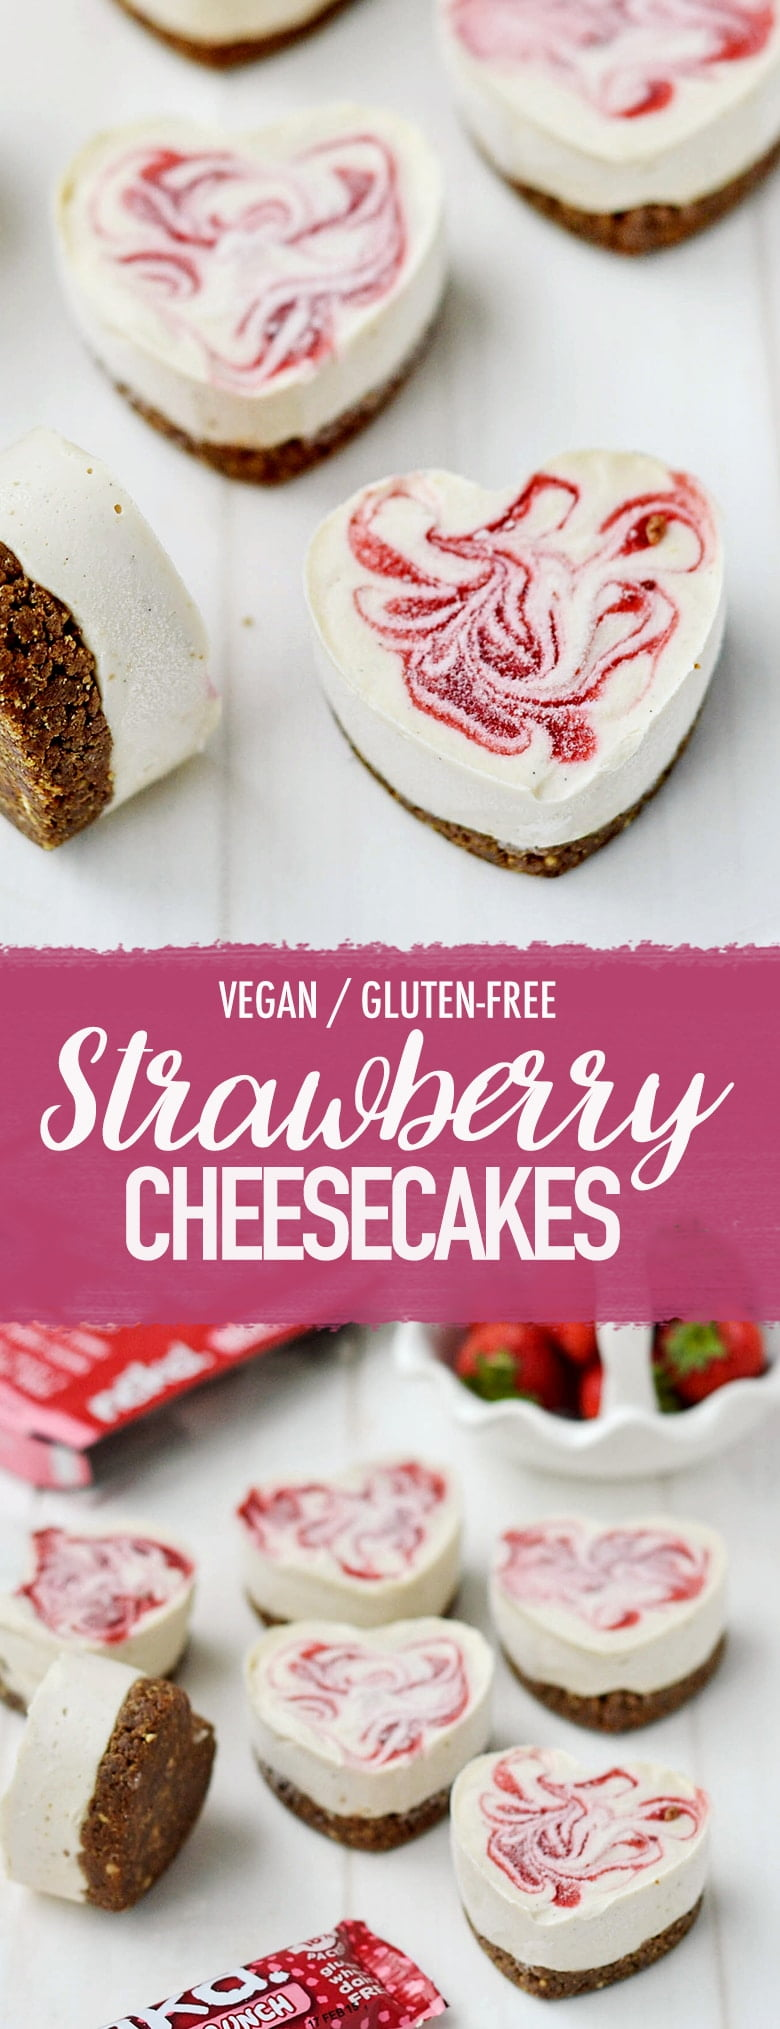 #Vegan Strawberry Cheesecakes #Glutenfree #ValentinesDay